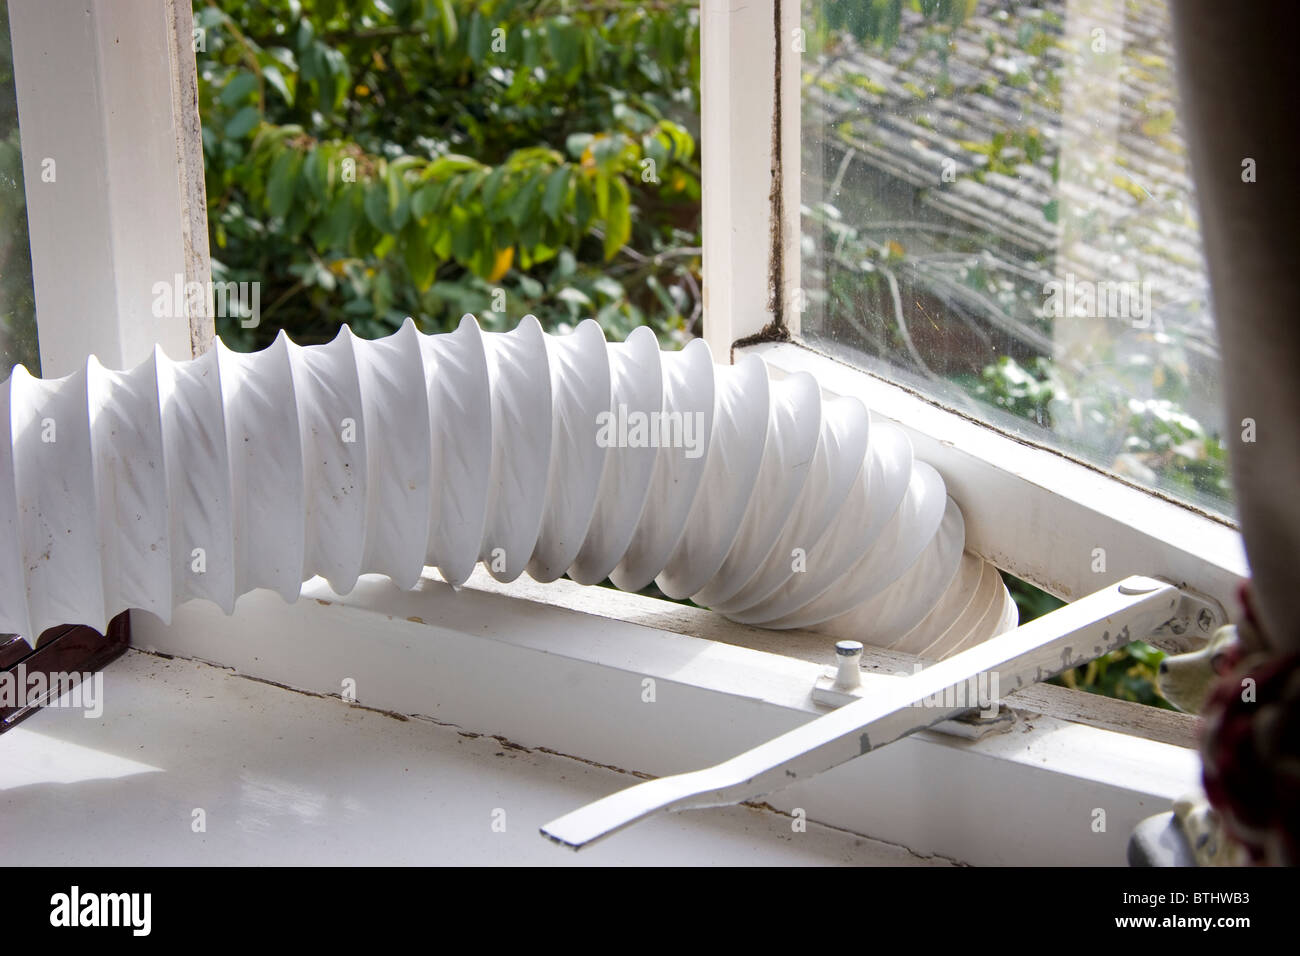 Tumble Dryer Vent Pipe Hanging Out Of A An Open Window